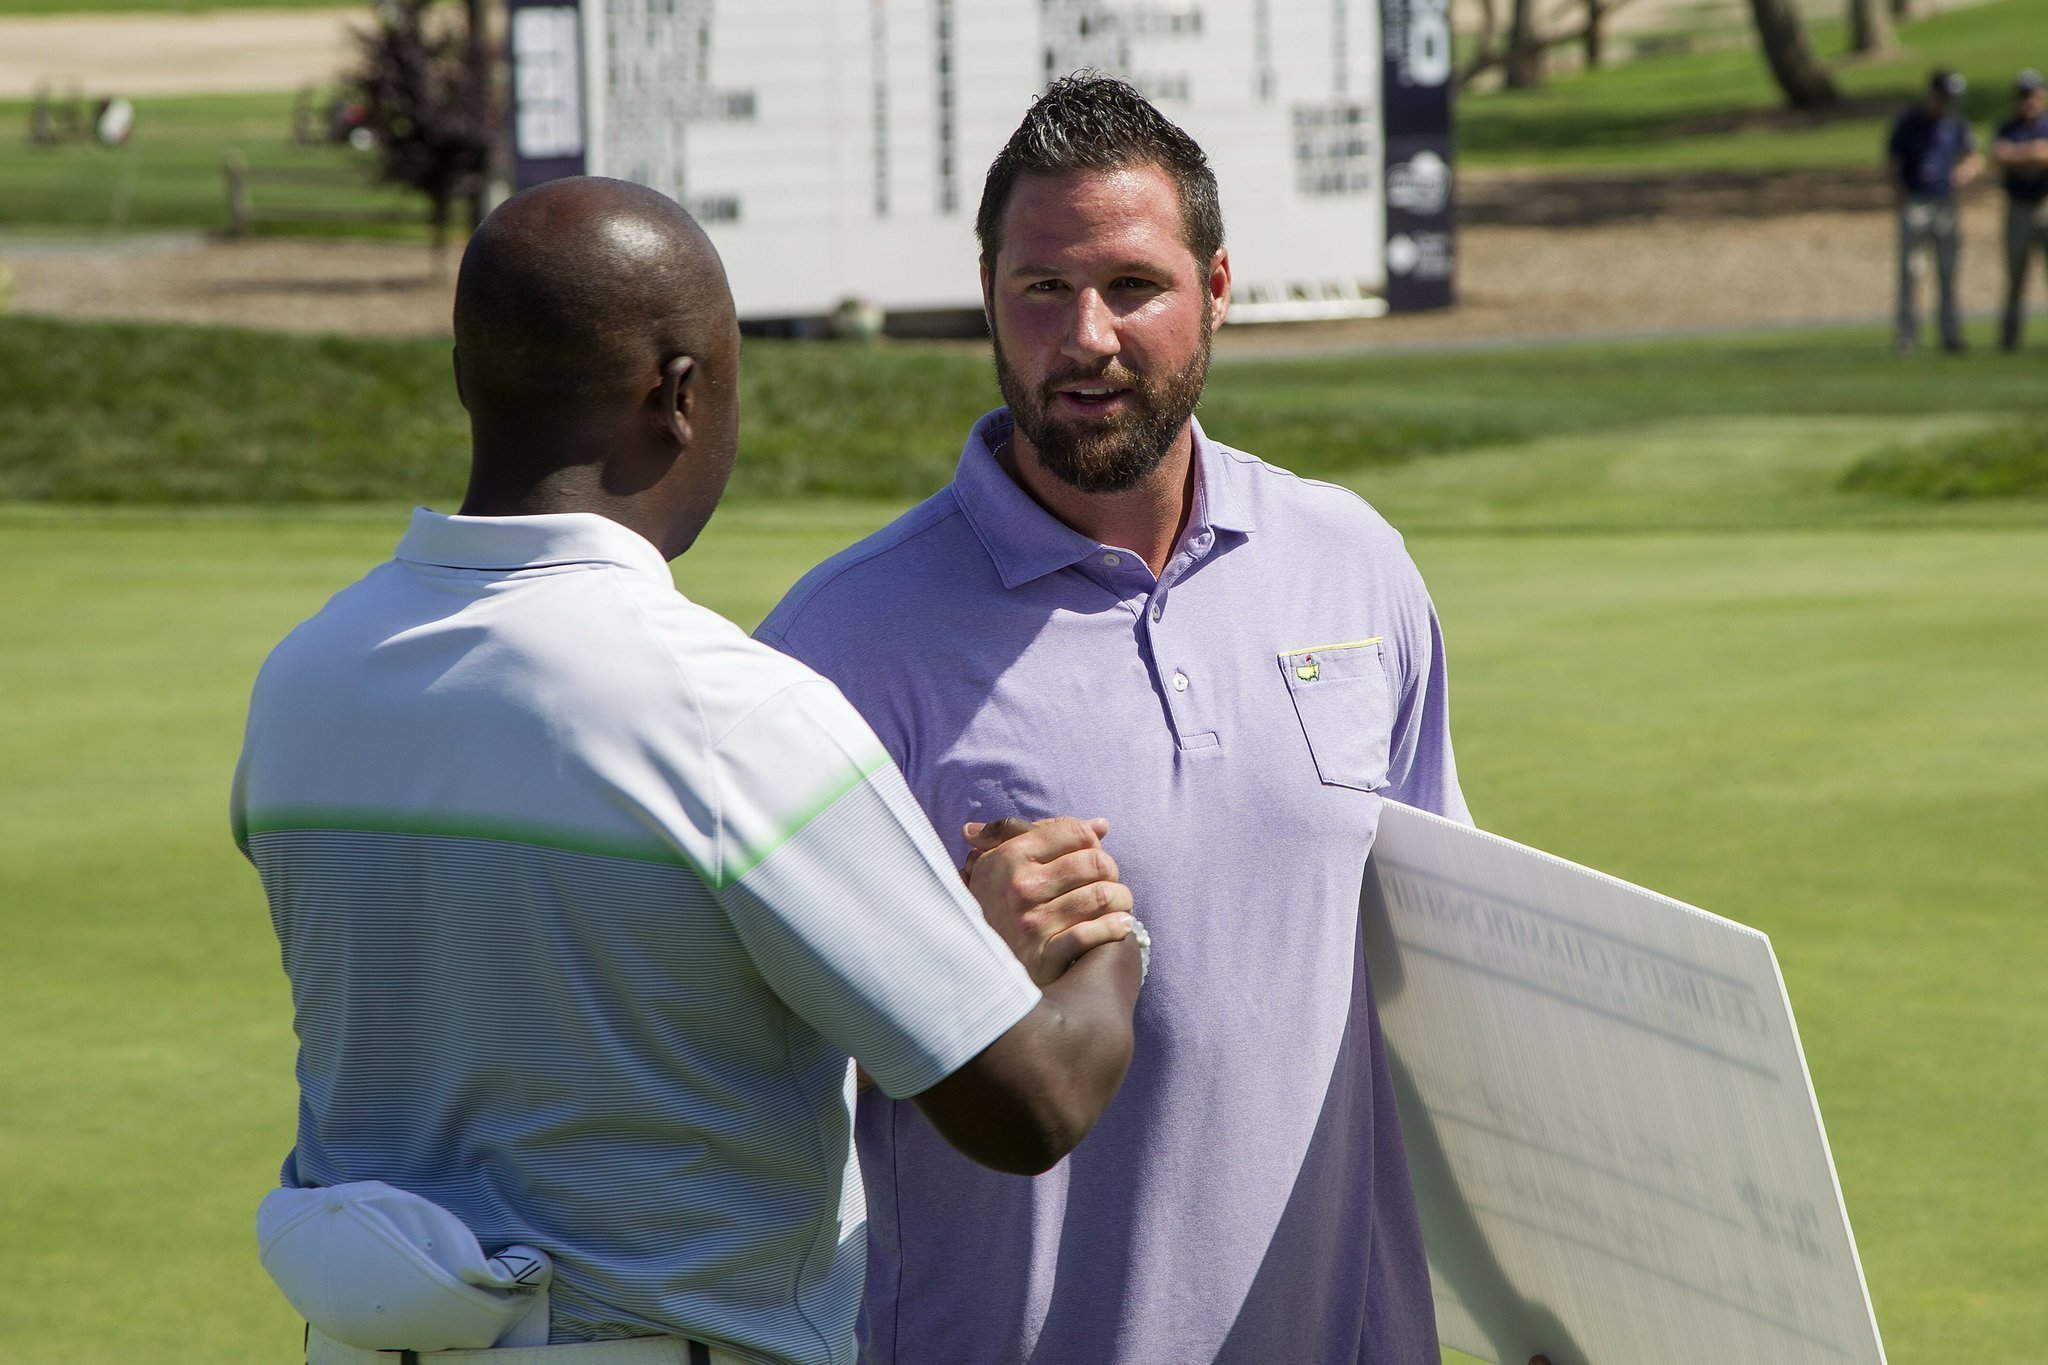 Gagne closes win in celebrity golf - The San Diego Union ...